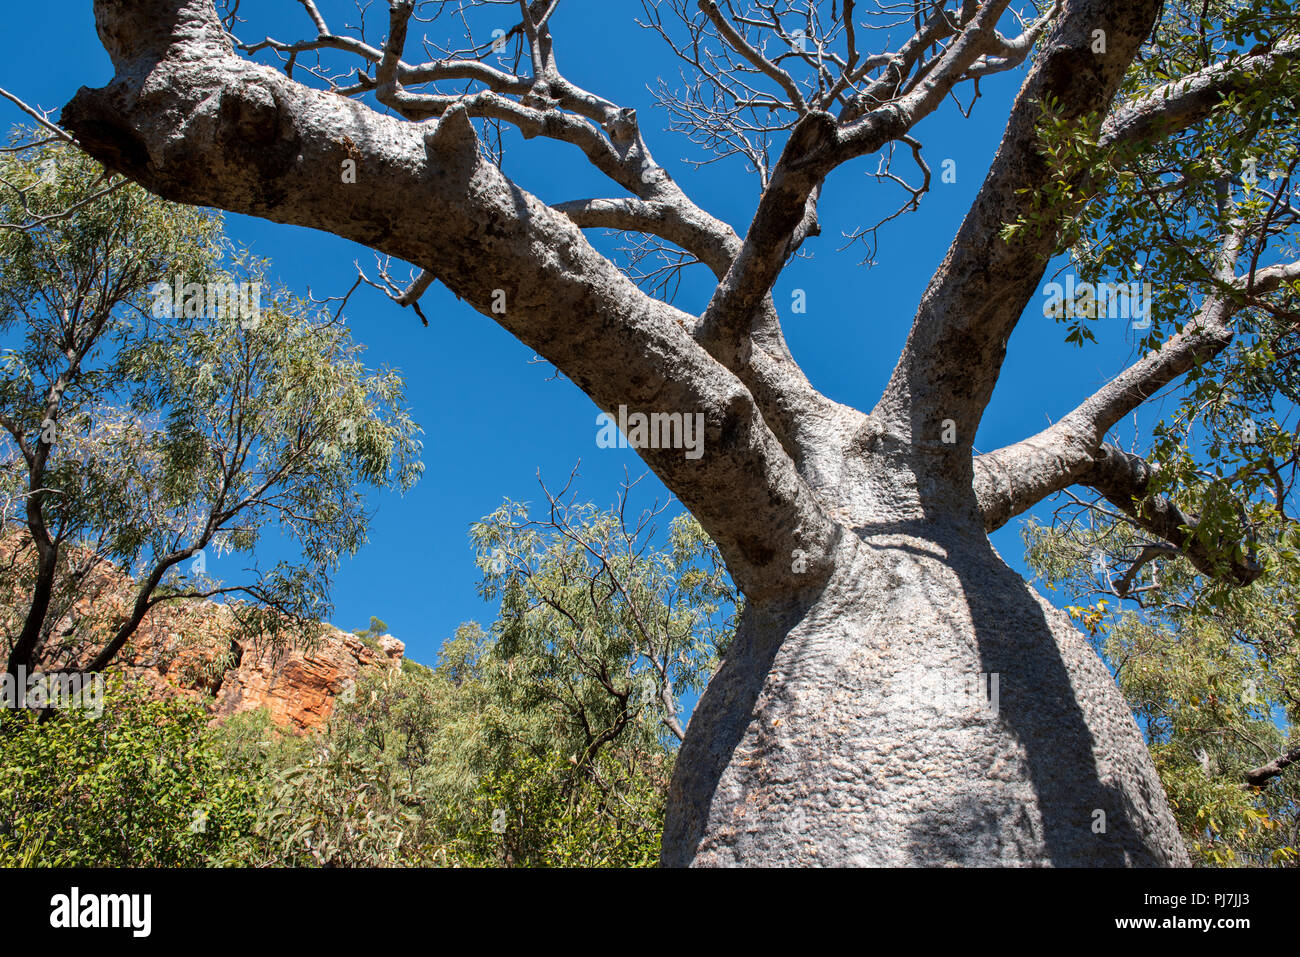 Australia, Western Australia, Doubtful Bay, Raft Point. Typical old boab trees. - Stock Image